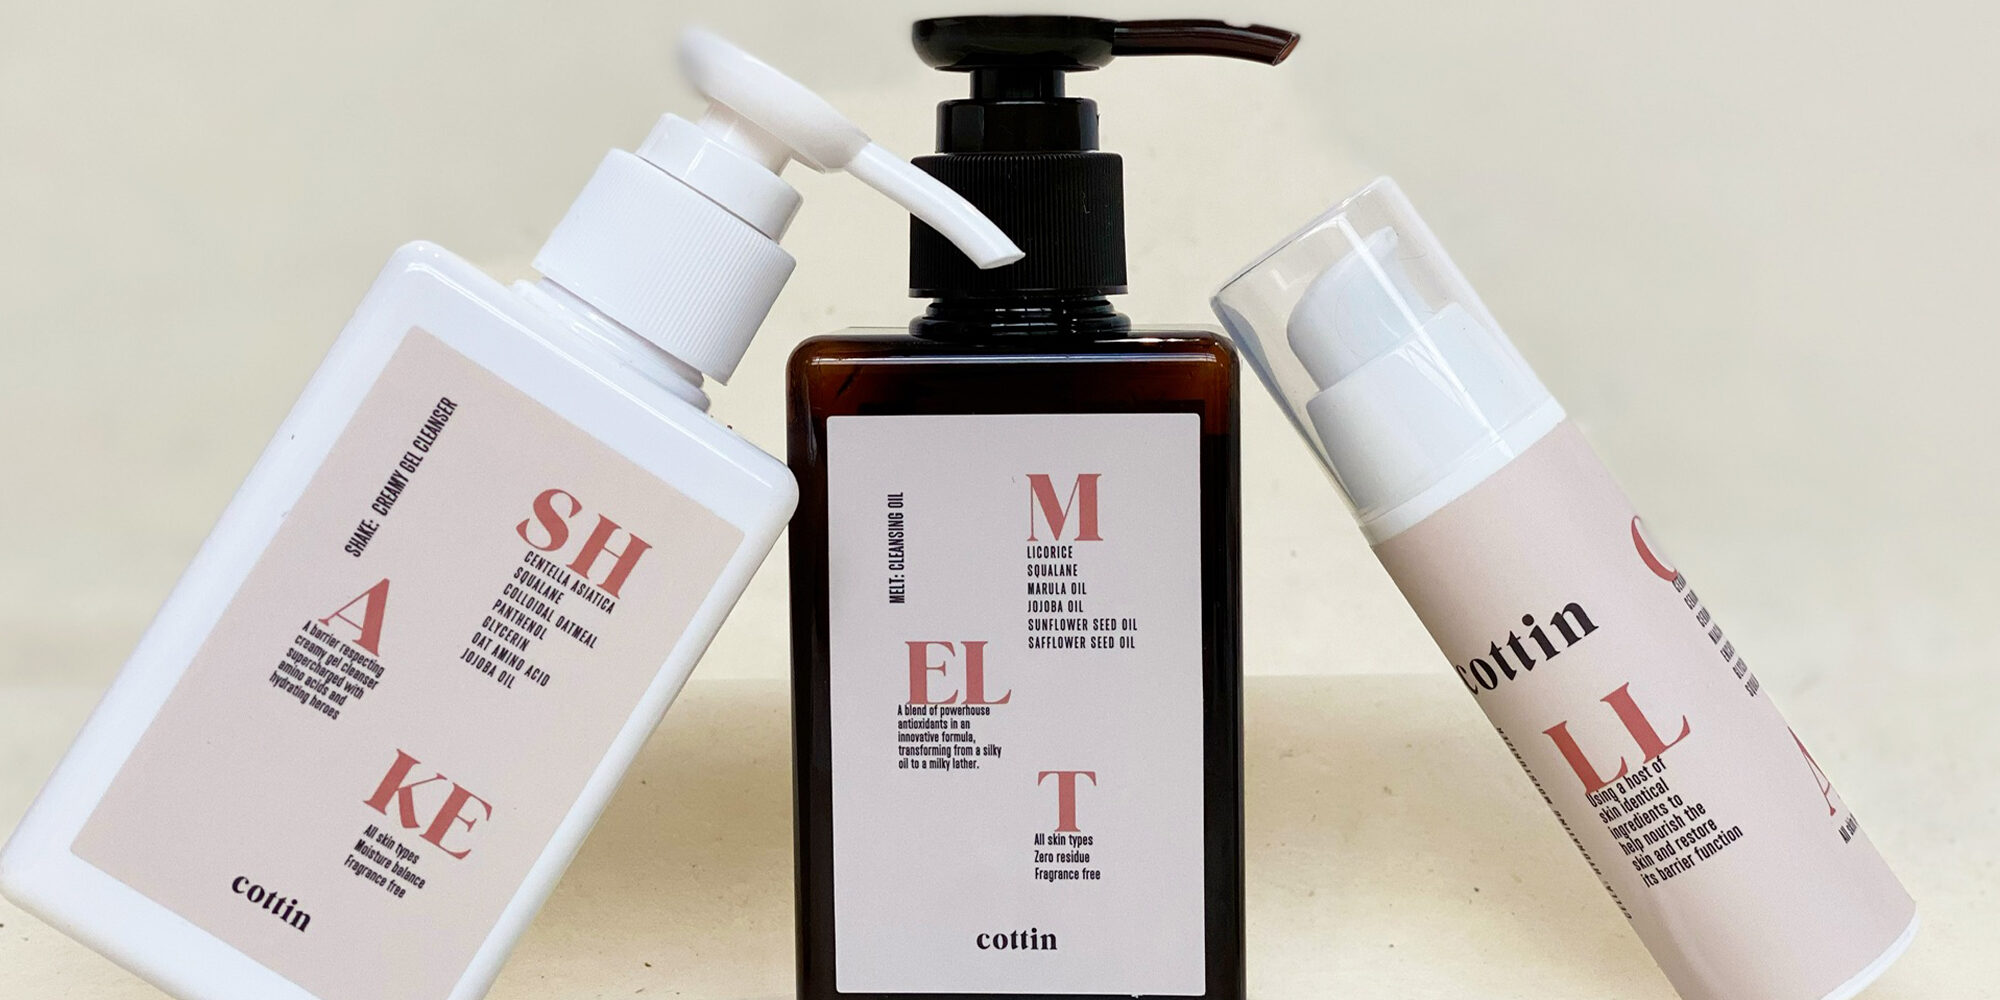 This New Brand Marries Science And Nature To Create Extra-Gentle Skincare Basics